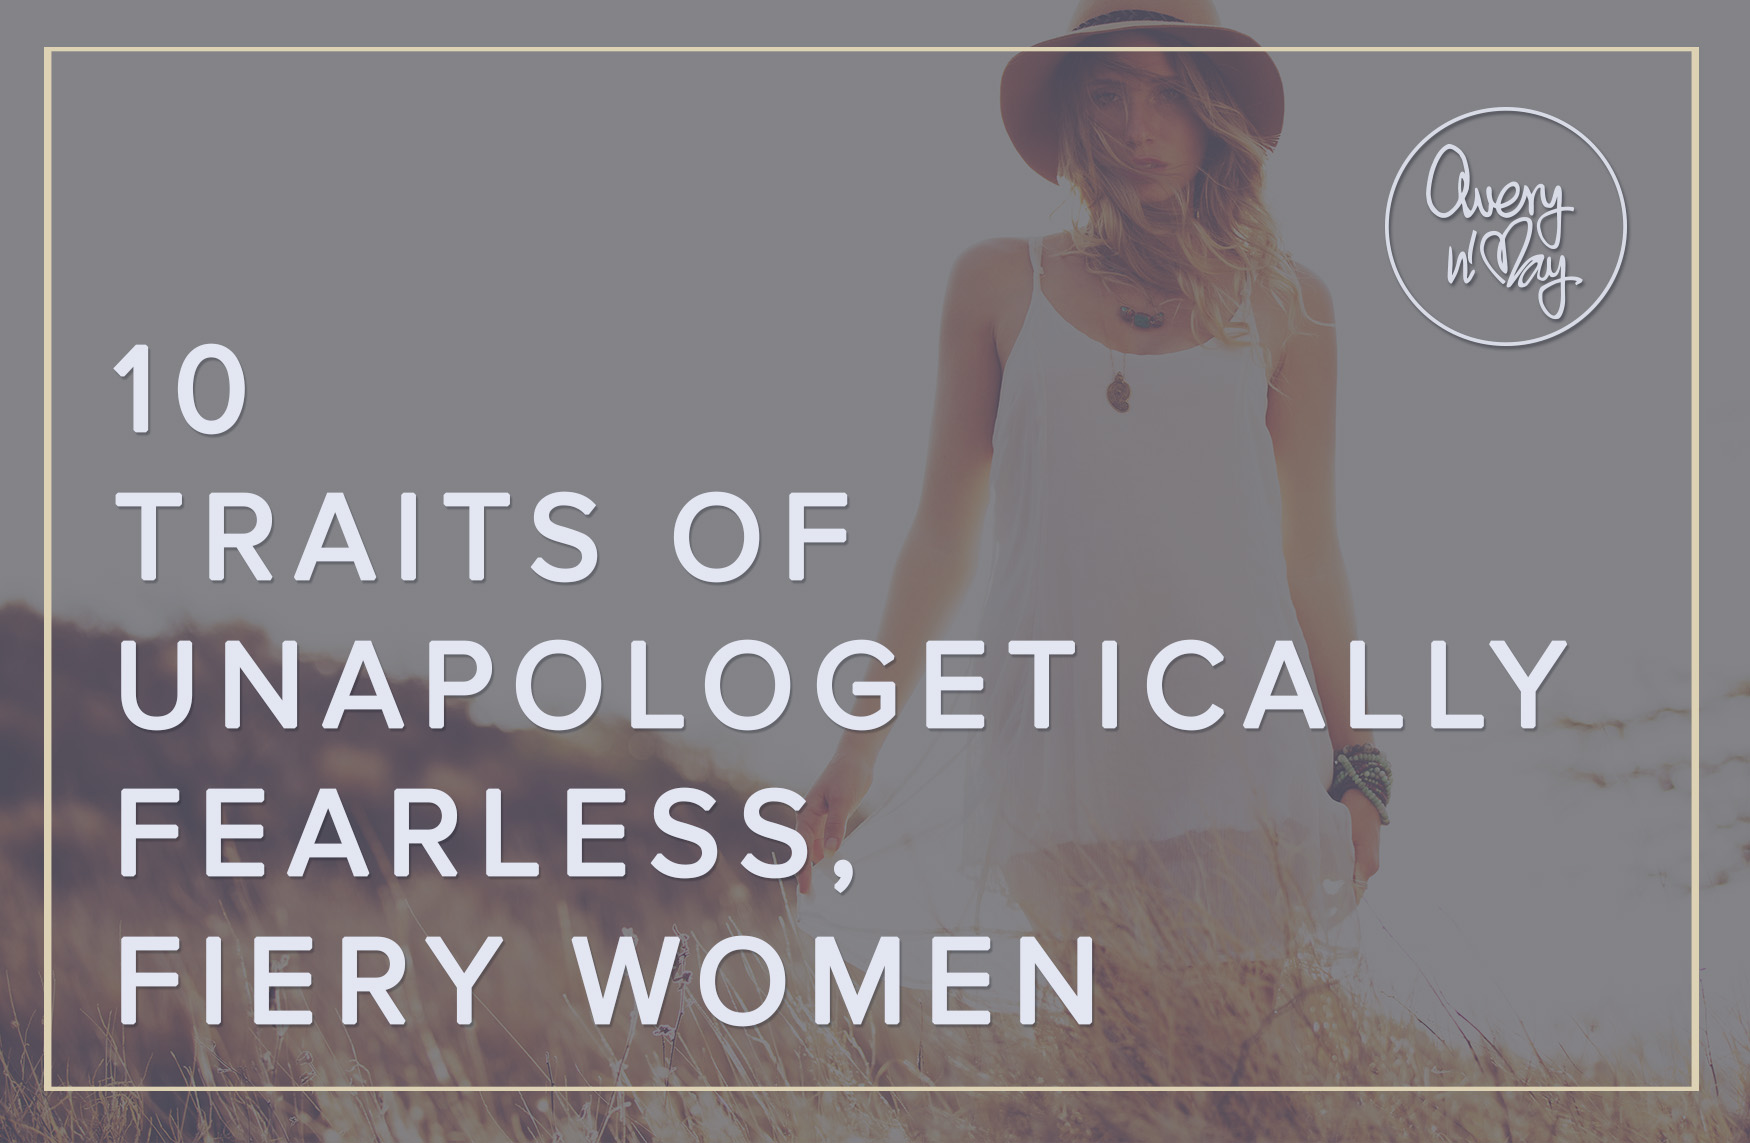 10 Traits Of Unapologetically Fearless, Fiery Women